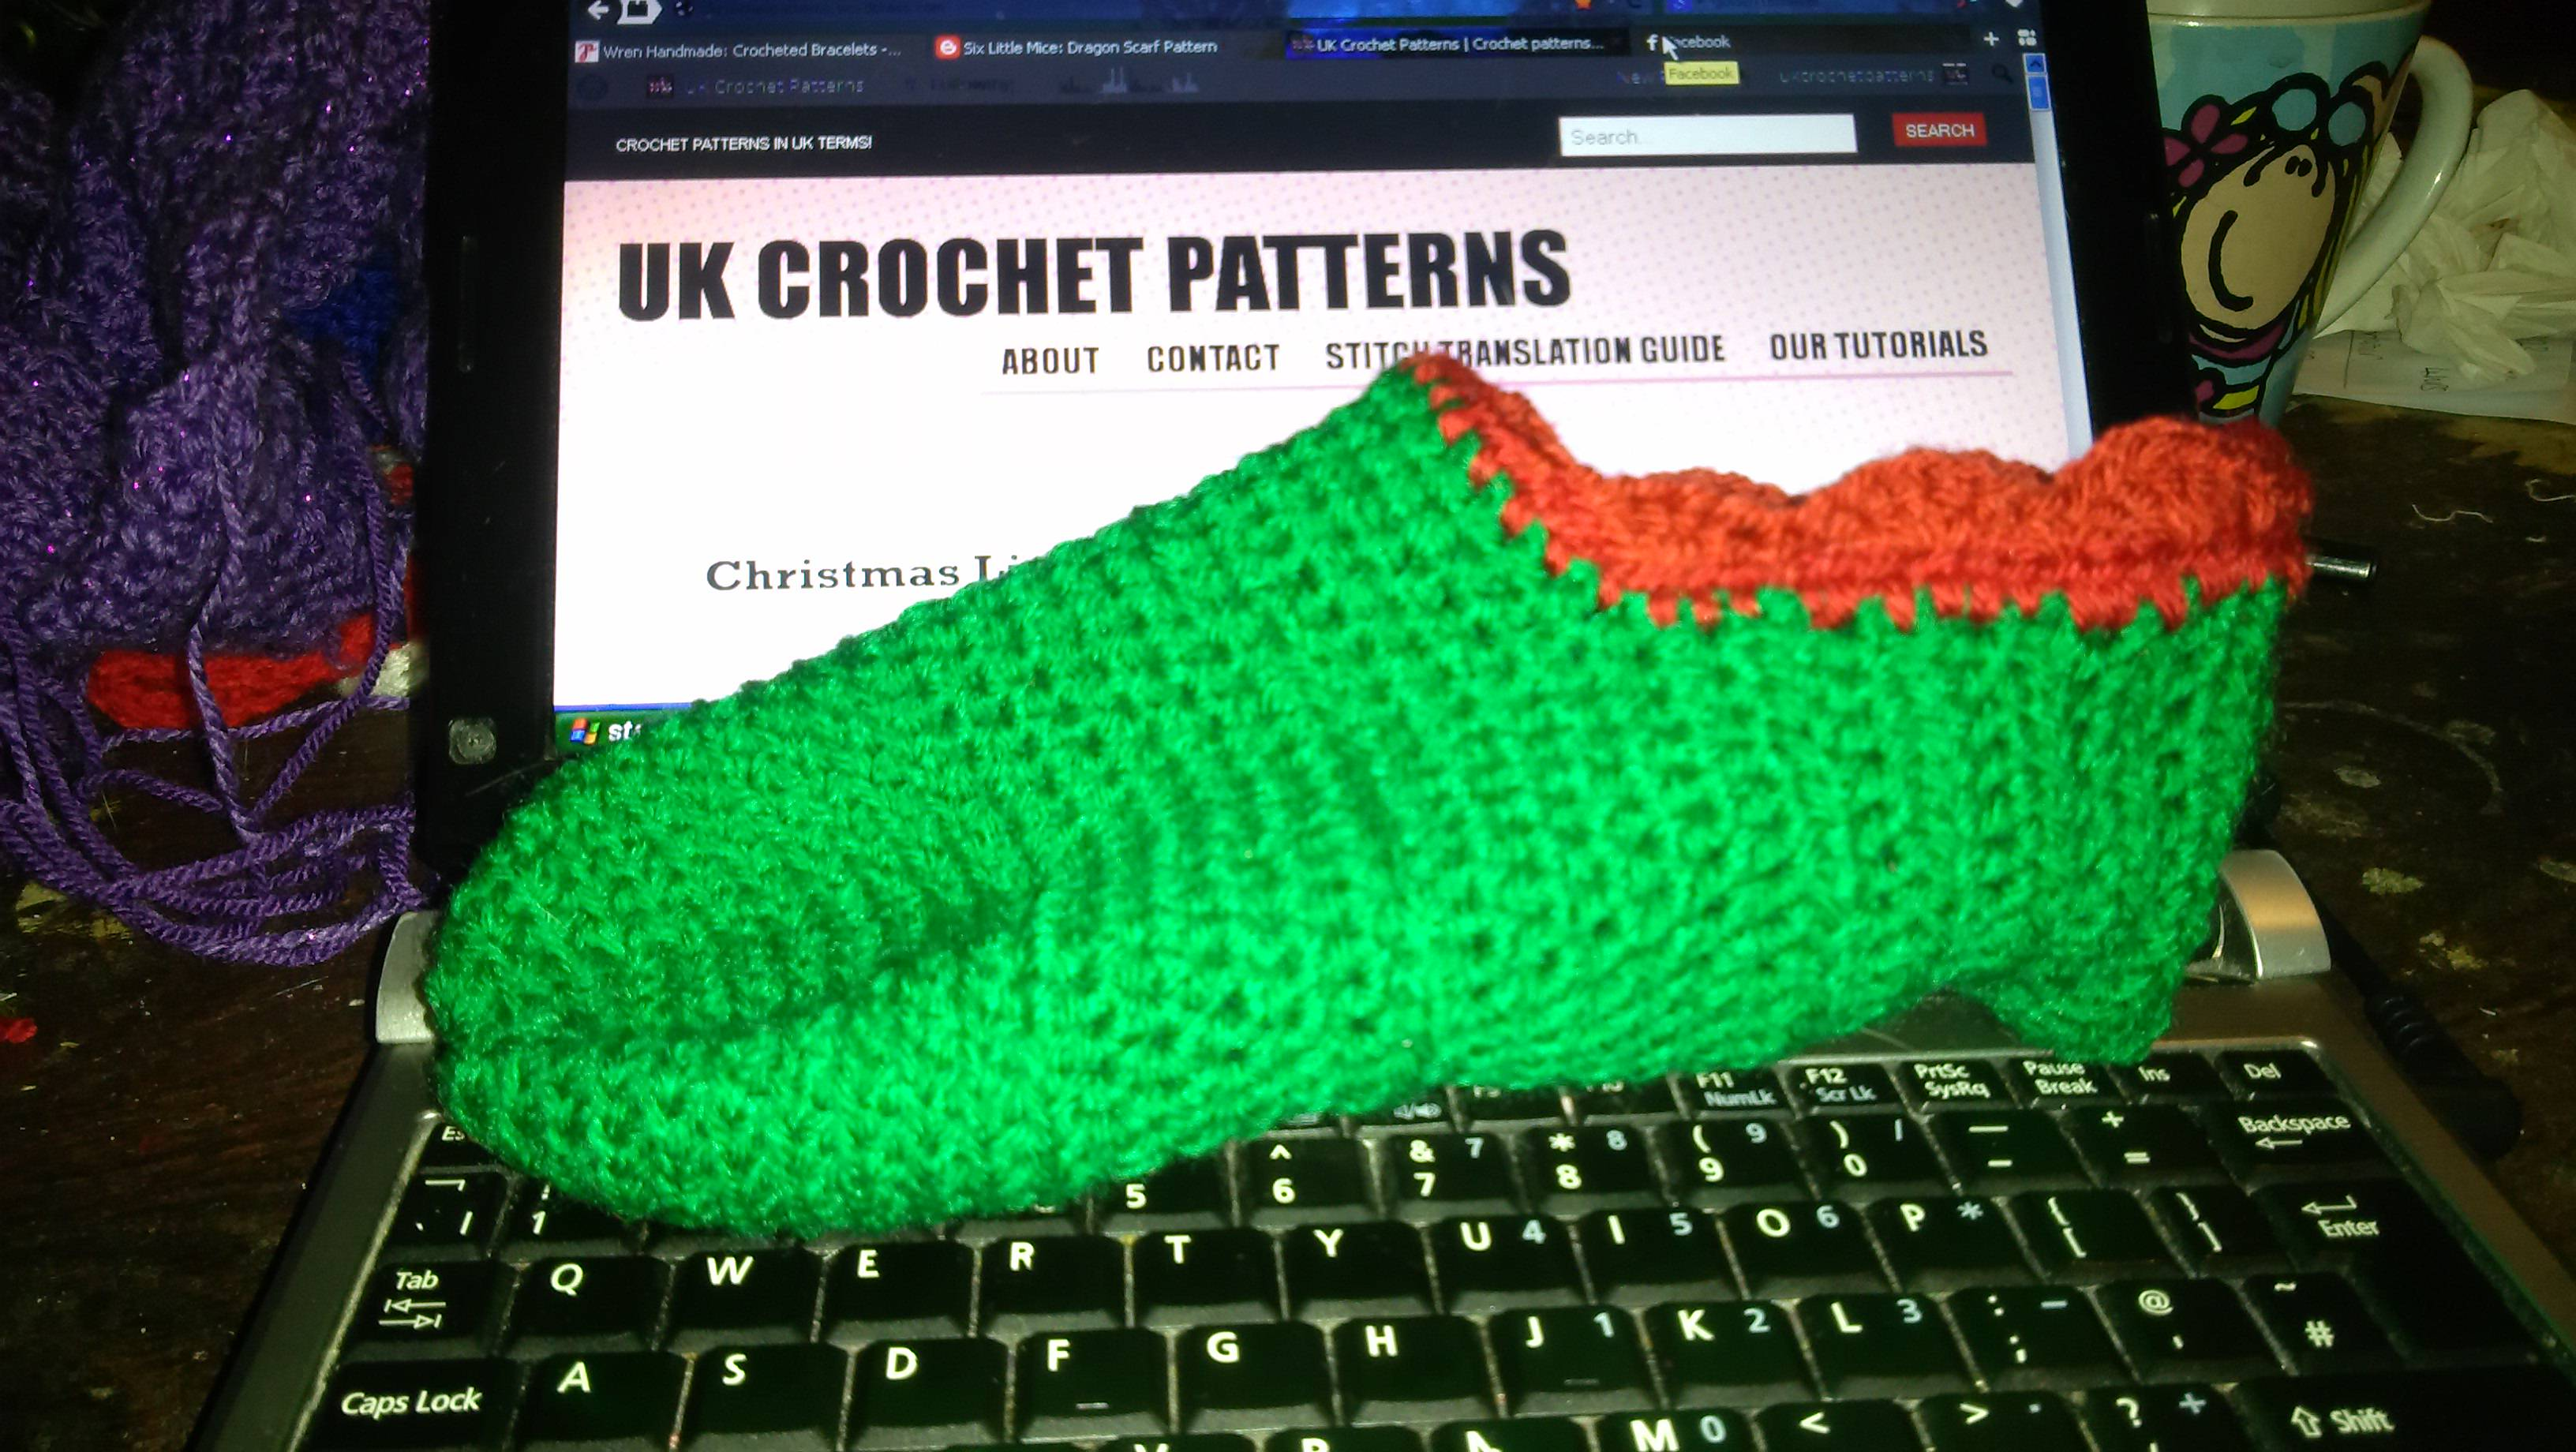 Crochet christmas slippers free pattern uk crochet patterns img20131121182703 bankloansurffo Choice Image